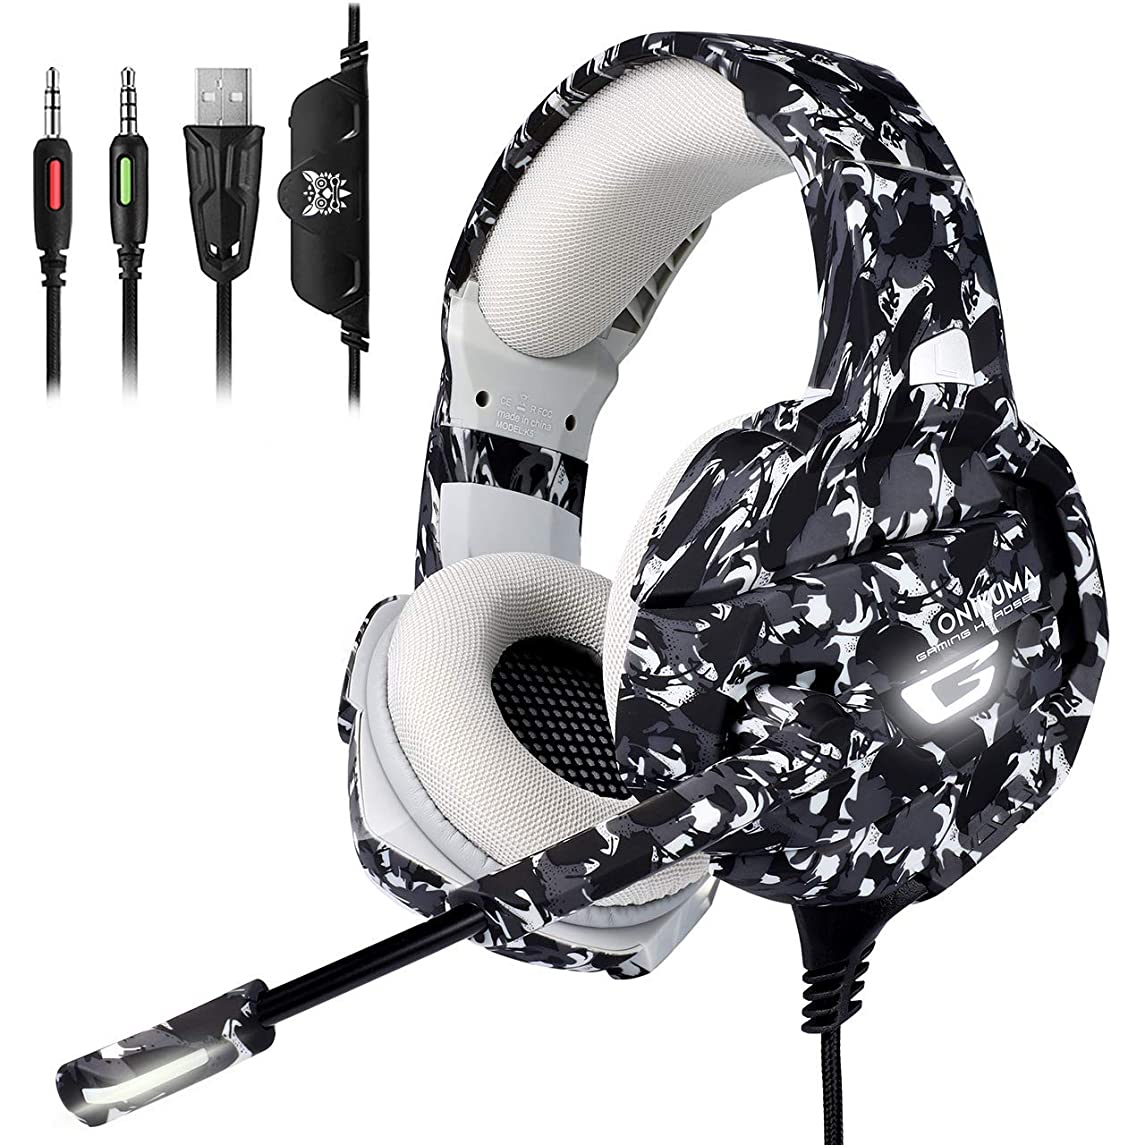 Xbox One Gaming Headset, PS4 Headset with 7.1 Surround Sound,?Noise Canceling Over-Ear Headphones with Mic, Soft Memory Earmuff for PS4, PC, Xbox One